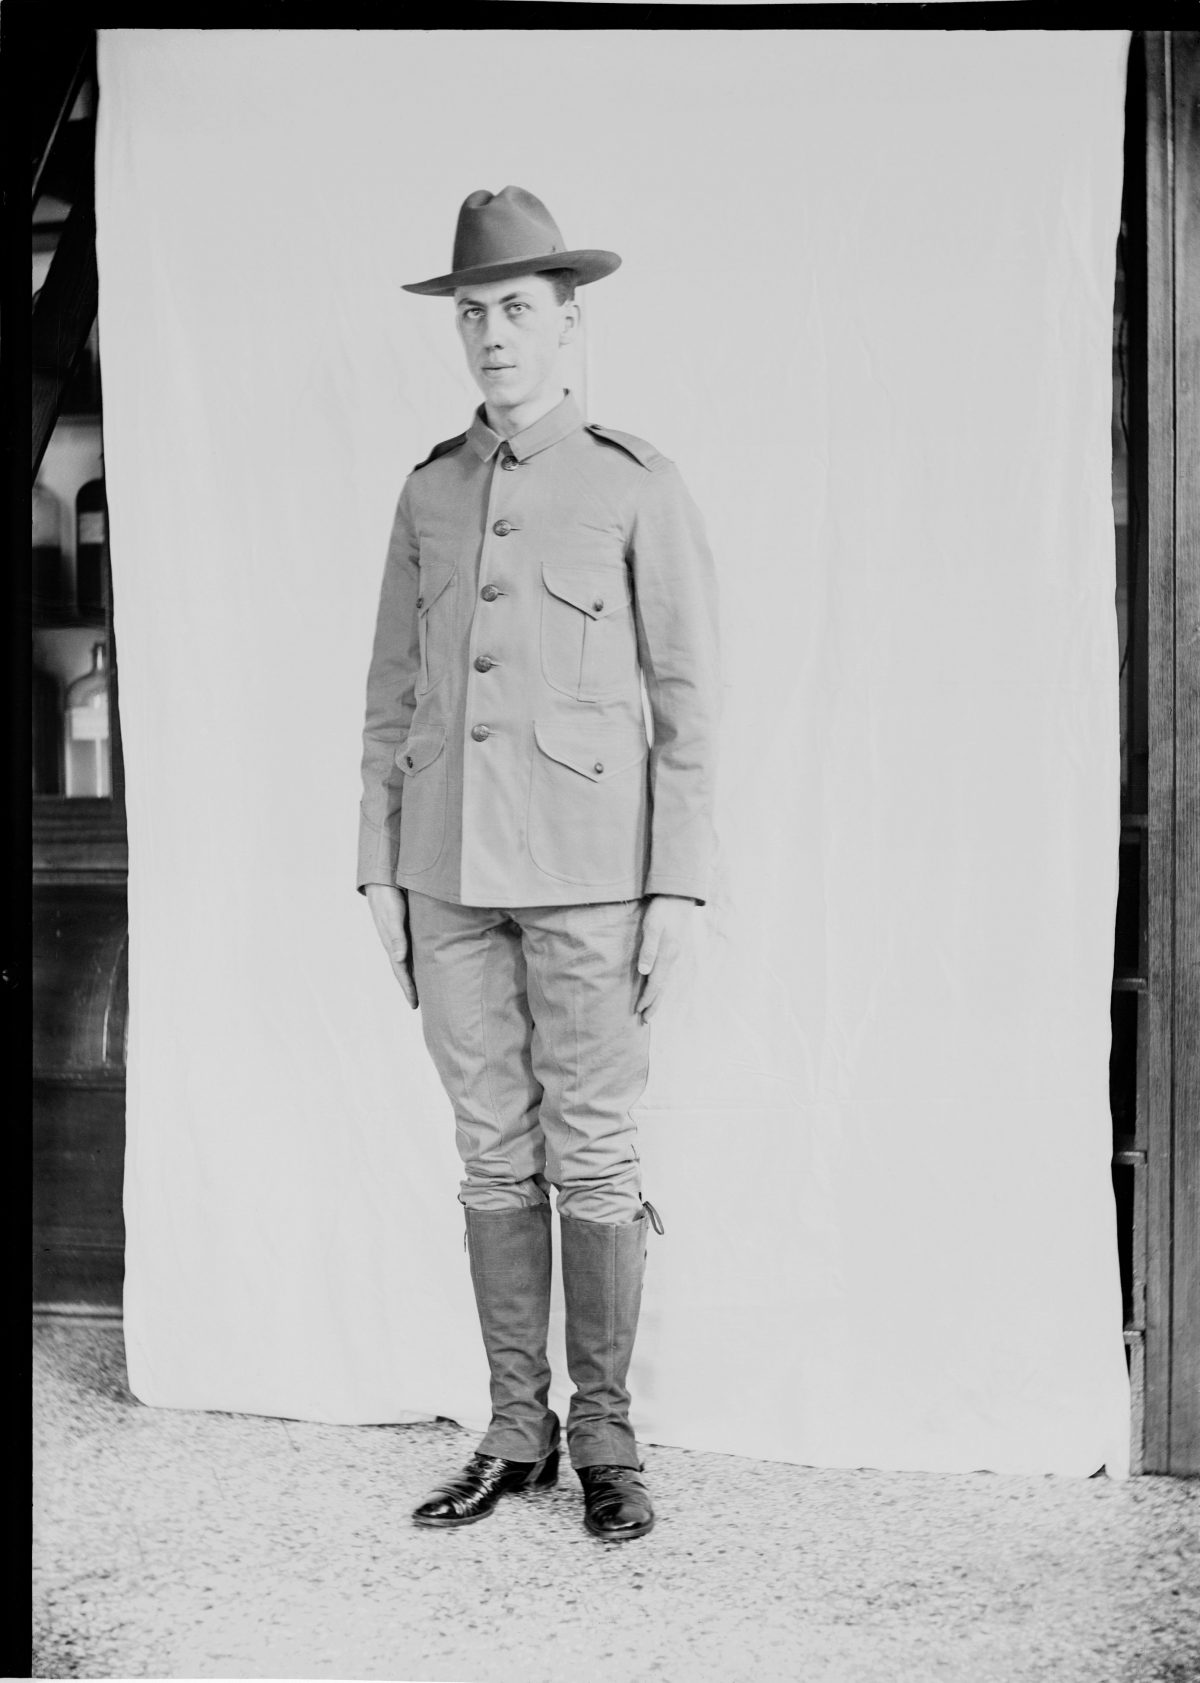 Portrait of George Silas Duntley in World War I UniformGeorge Silas Duntley Photographs 1899-1918